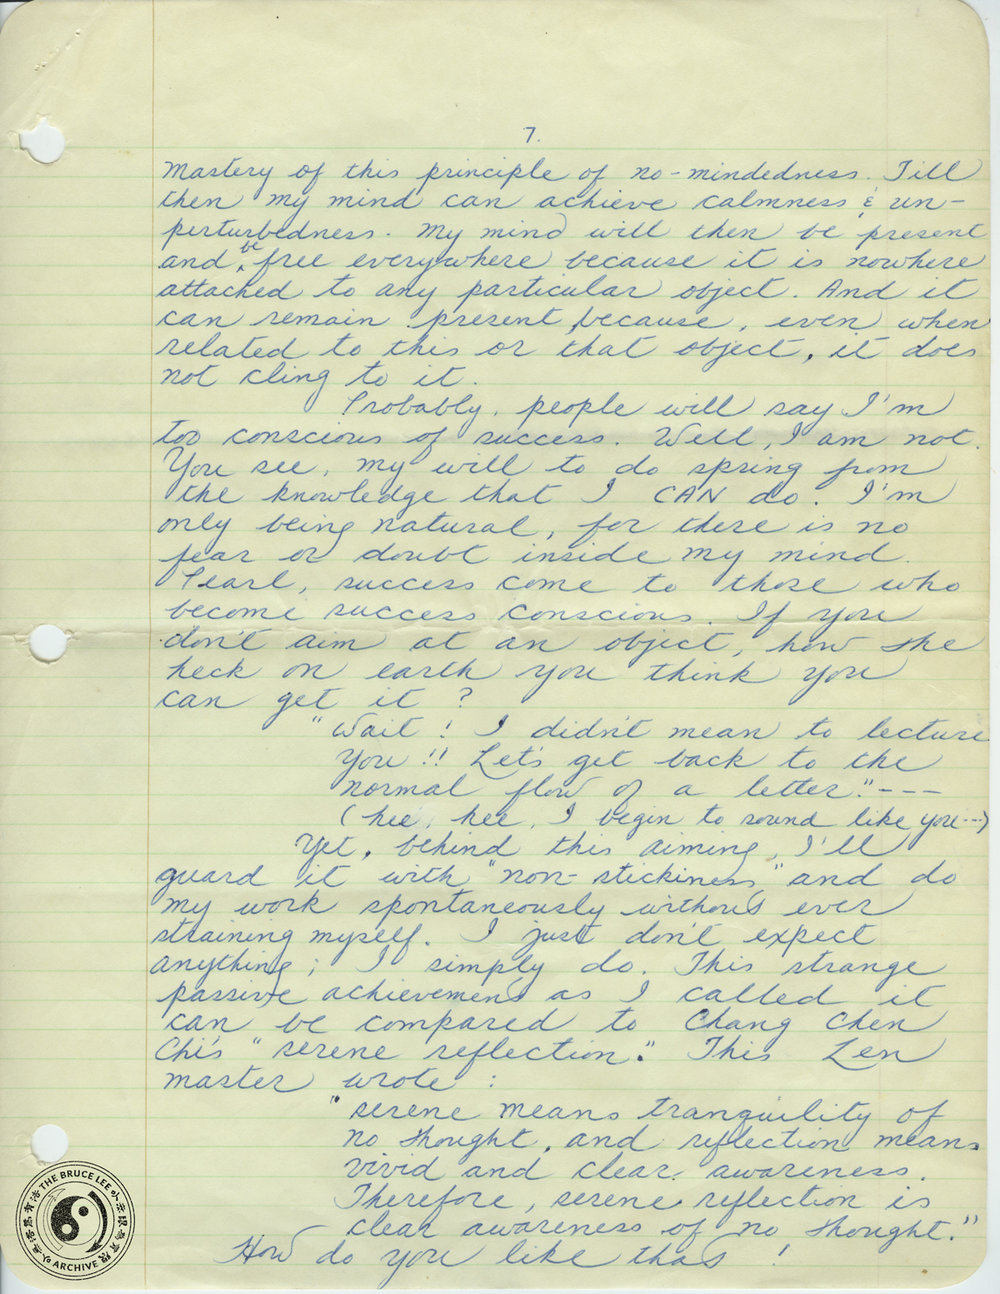 Letter-to-Pearl-draft-pg.7-archive.jpg